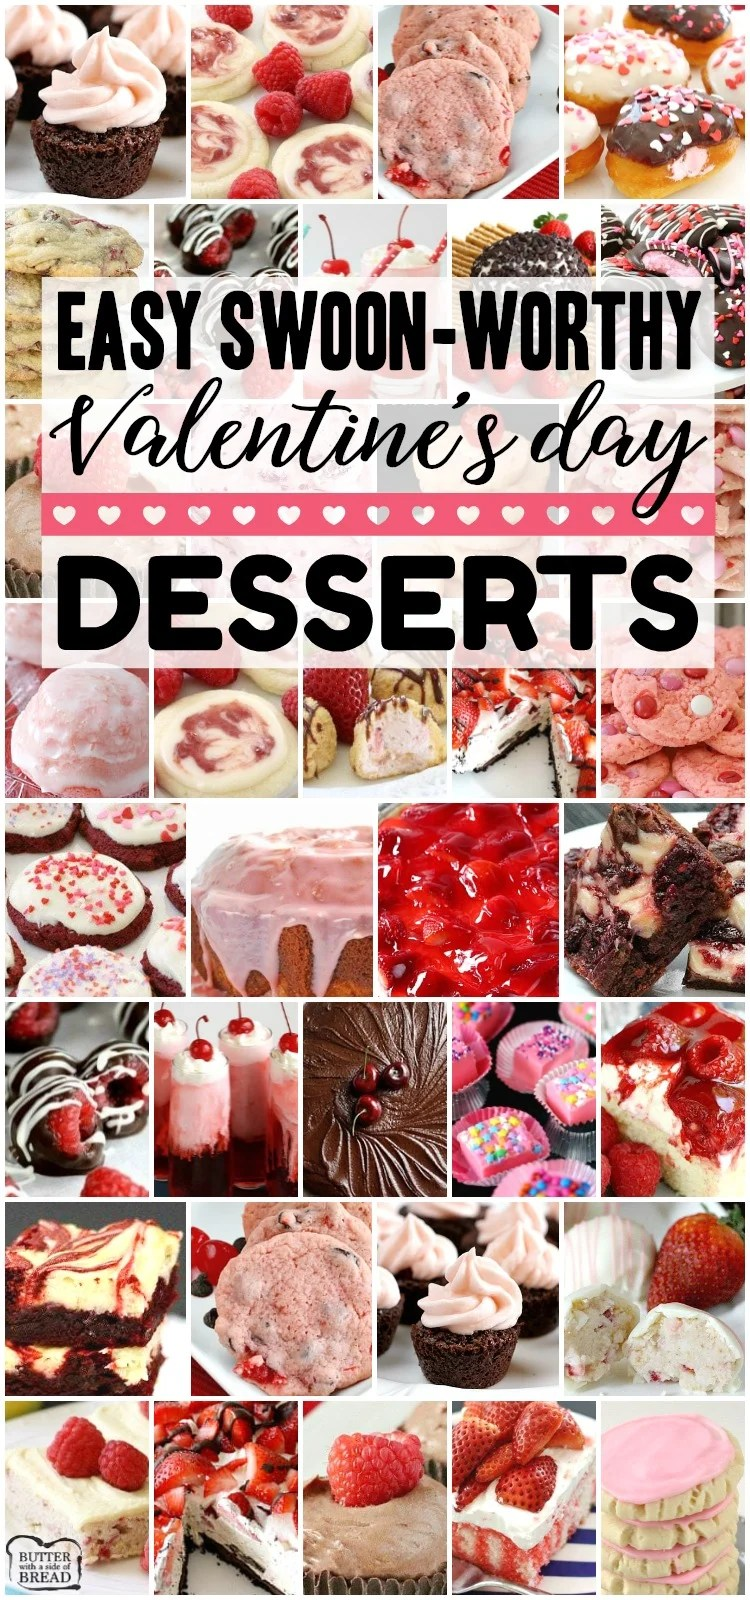 Easy Valentine's Day Desserts perfect for your special someone and guaranteed to make him or her swoon! Cookies, cakes, strawberry pies, chocolate pretzels and more Valentine's Day desserts for everyone. Lots of class party ideas! #valentines #desserts #love #baking #treats #Valentine #classparty #recipes from BUTTER WITH A SIDE OF BREAD